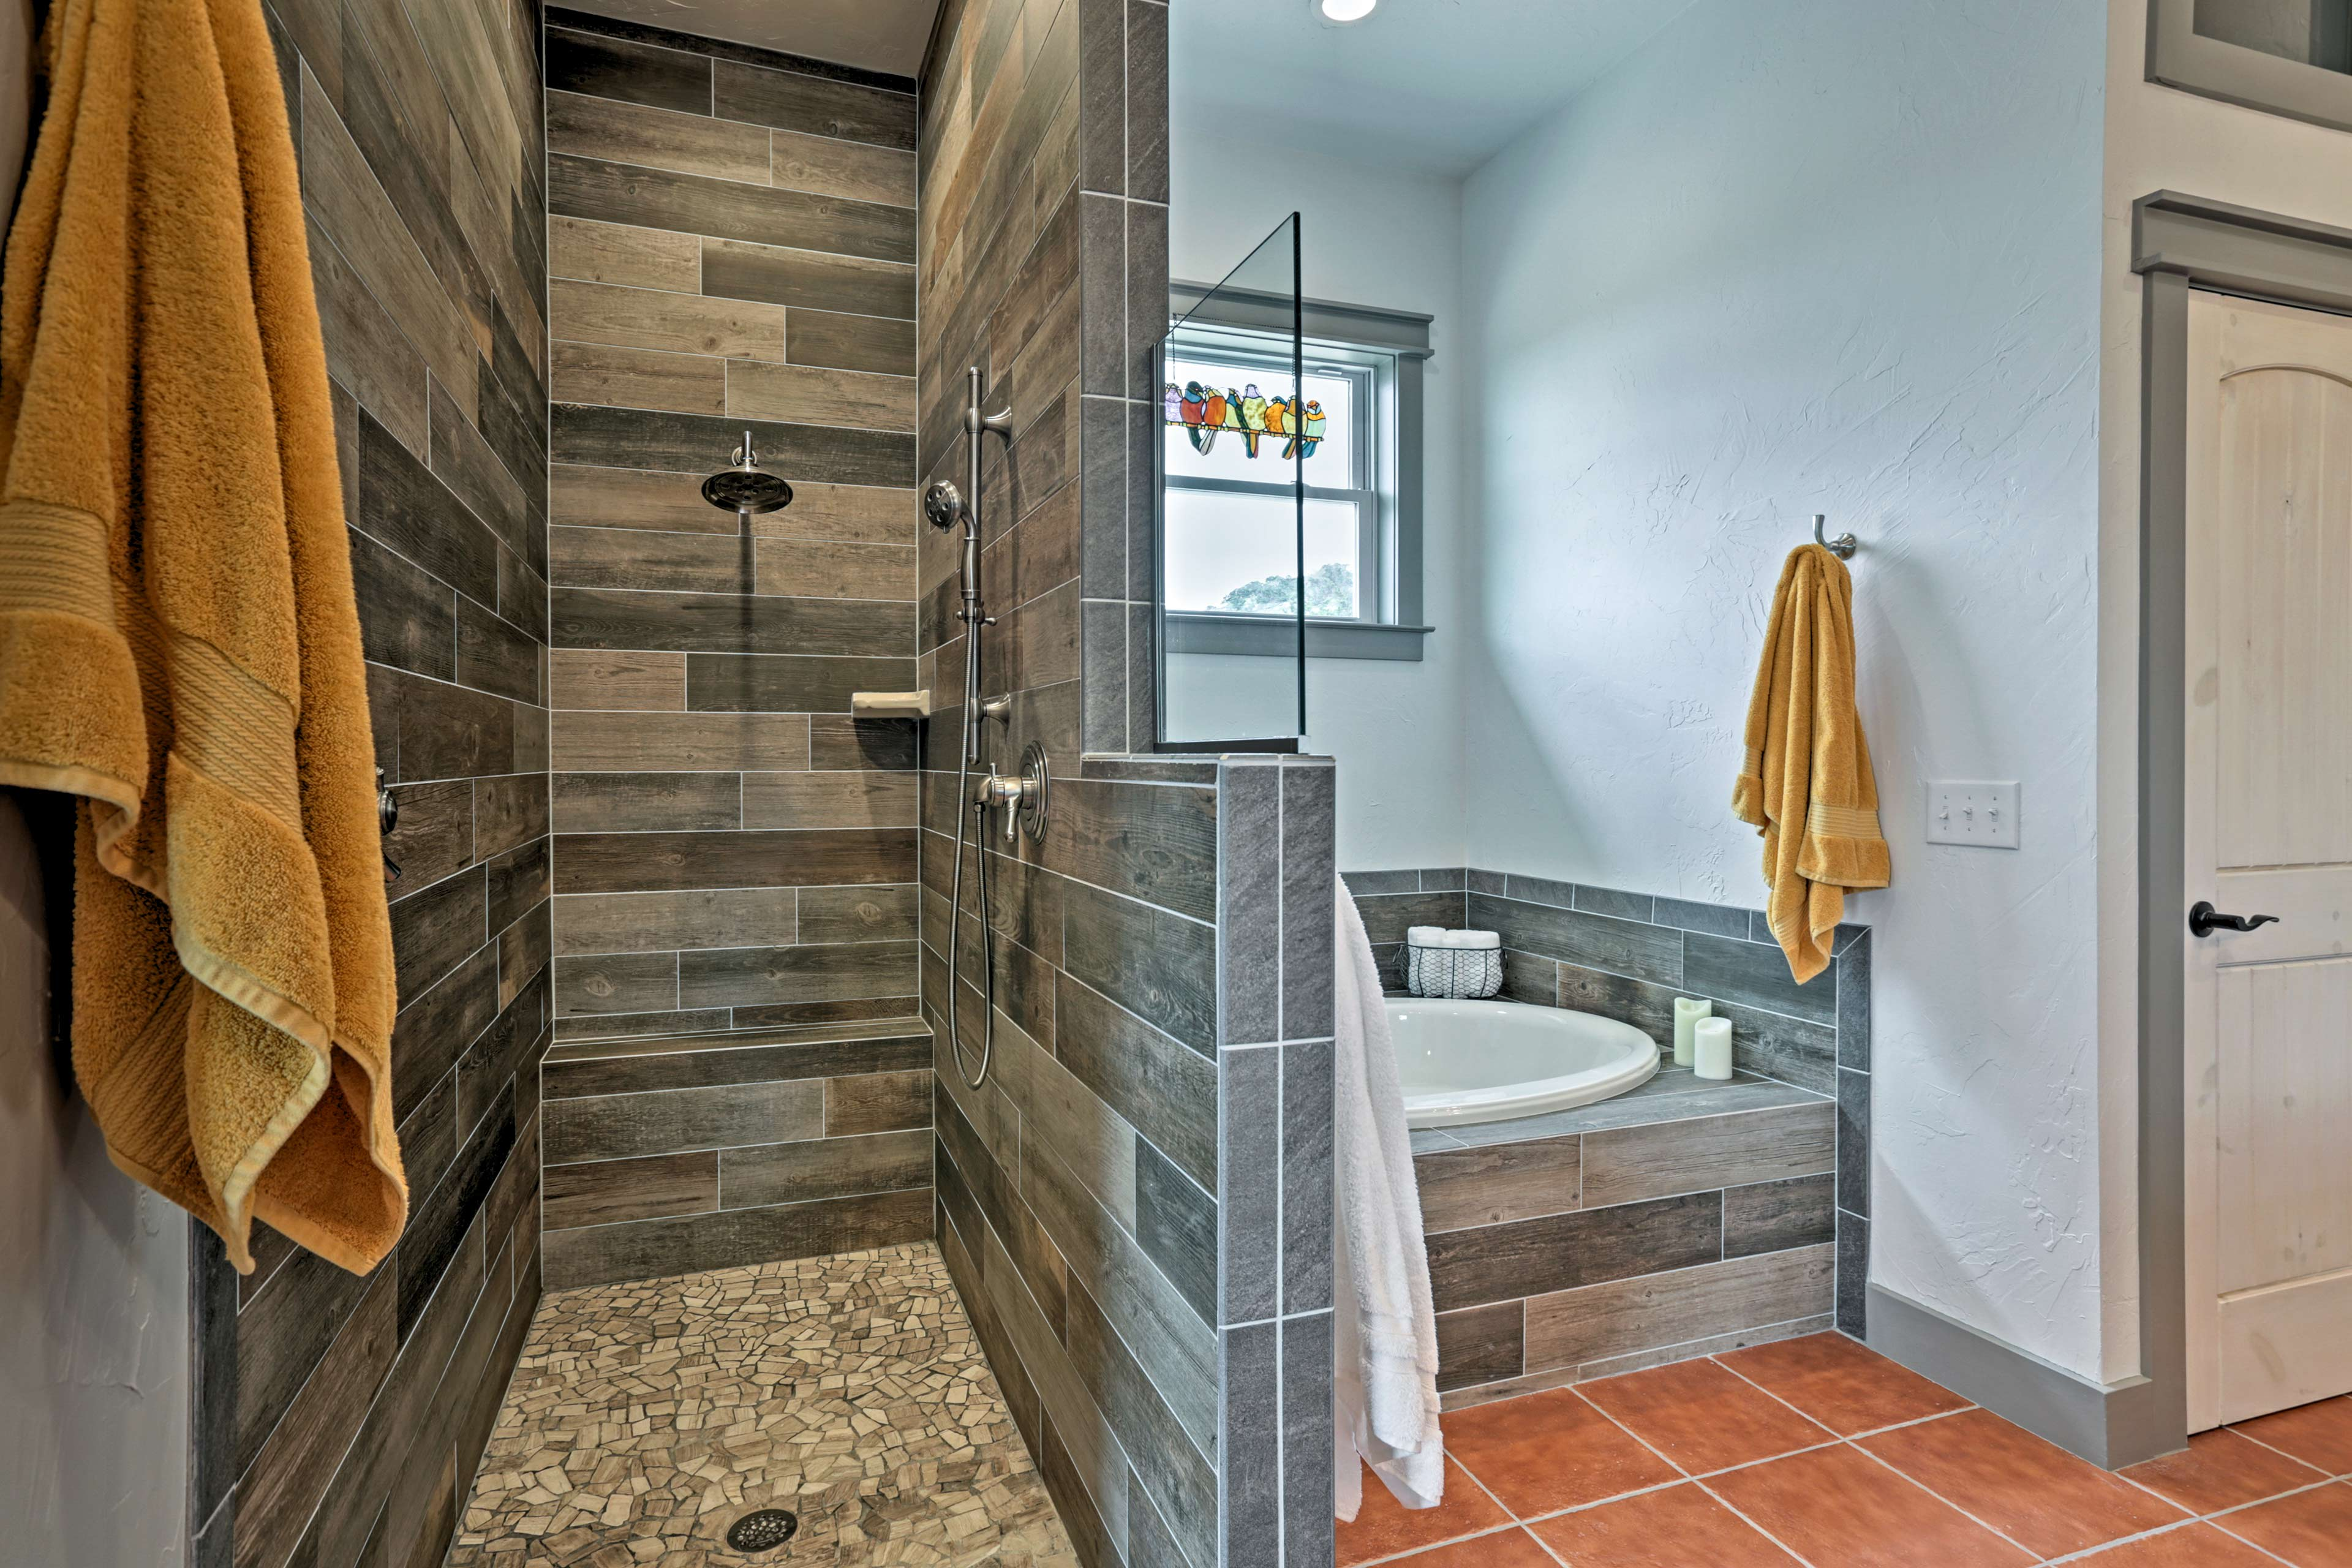 There's even a full en-suite bathroom connected to the master bedroom.